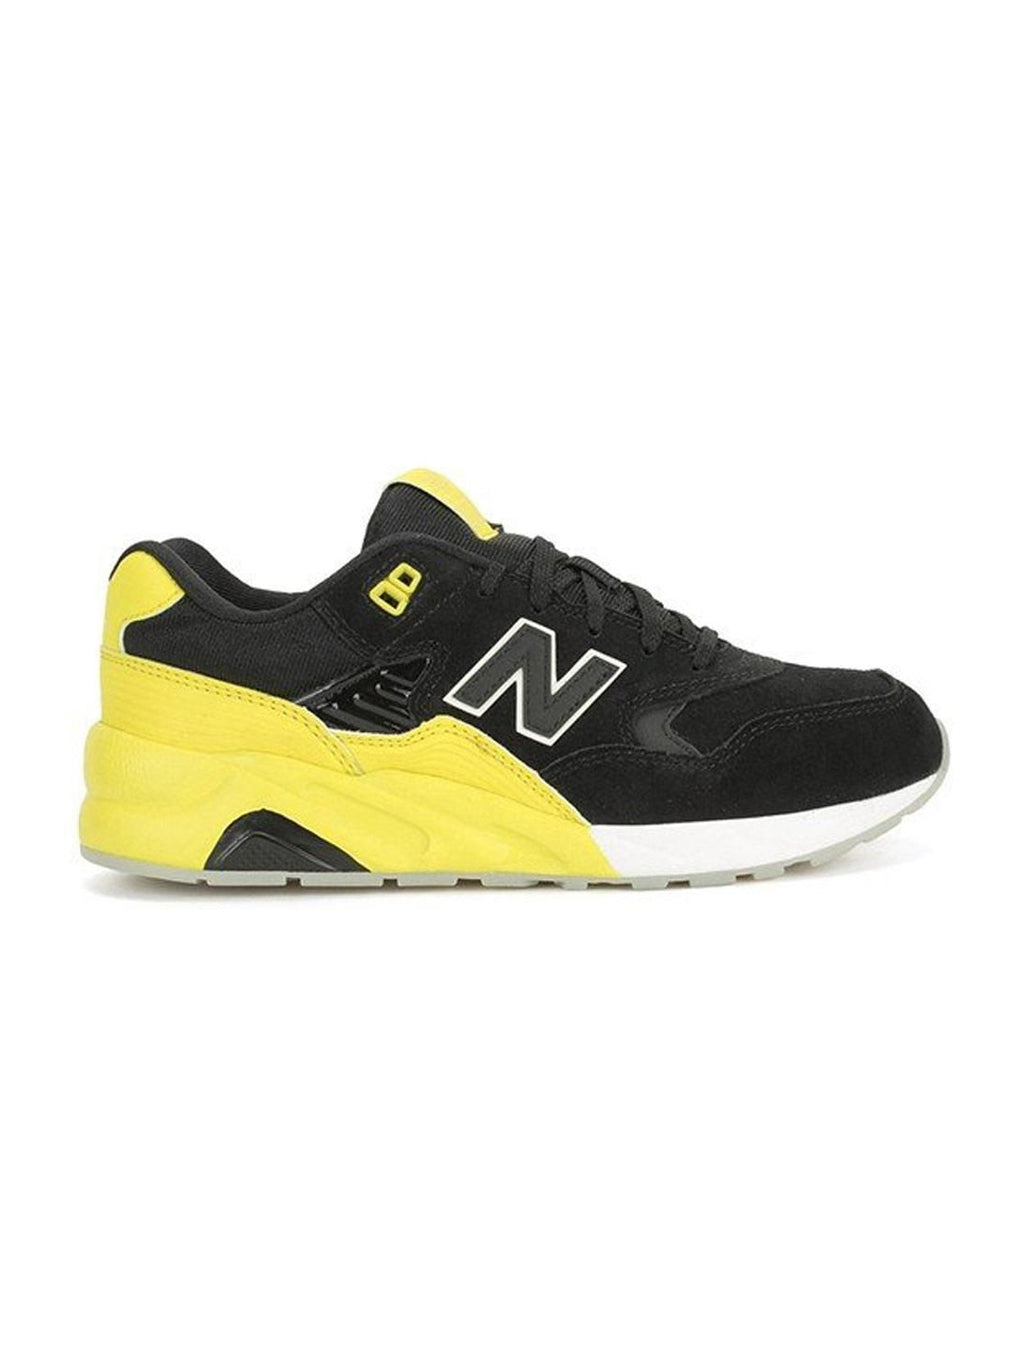 Black & Yellow 580 D Sneakers